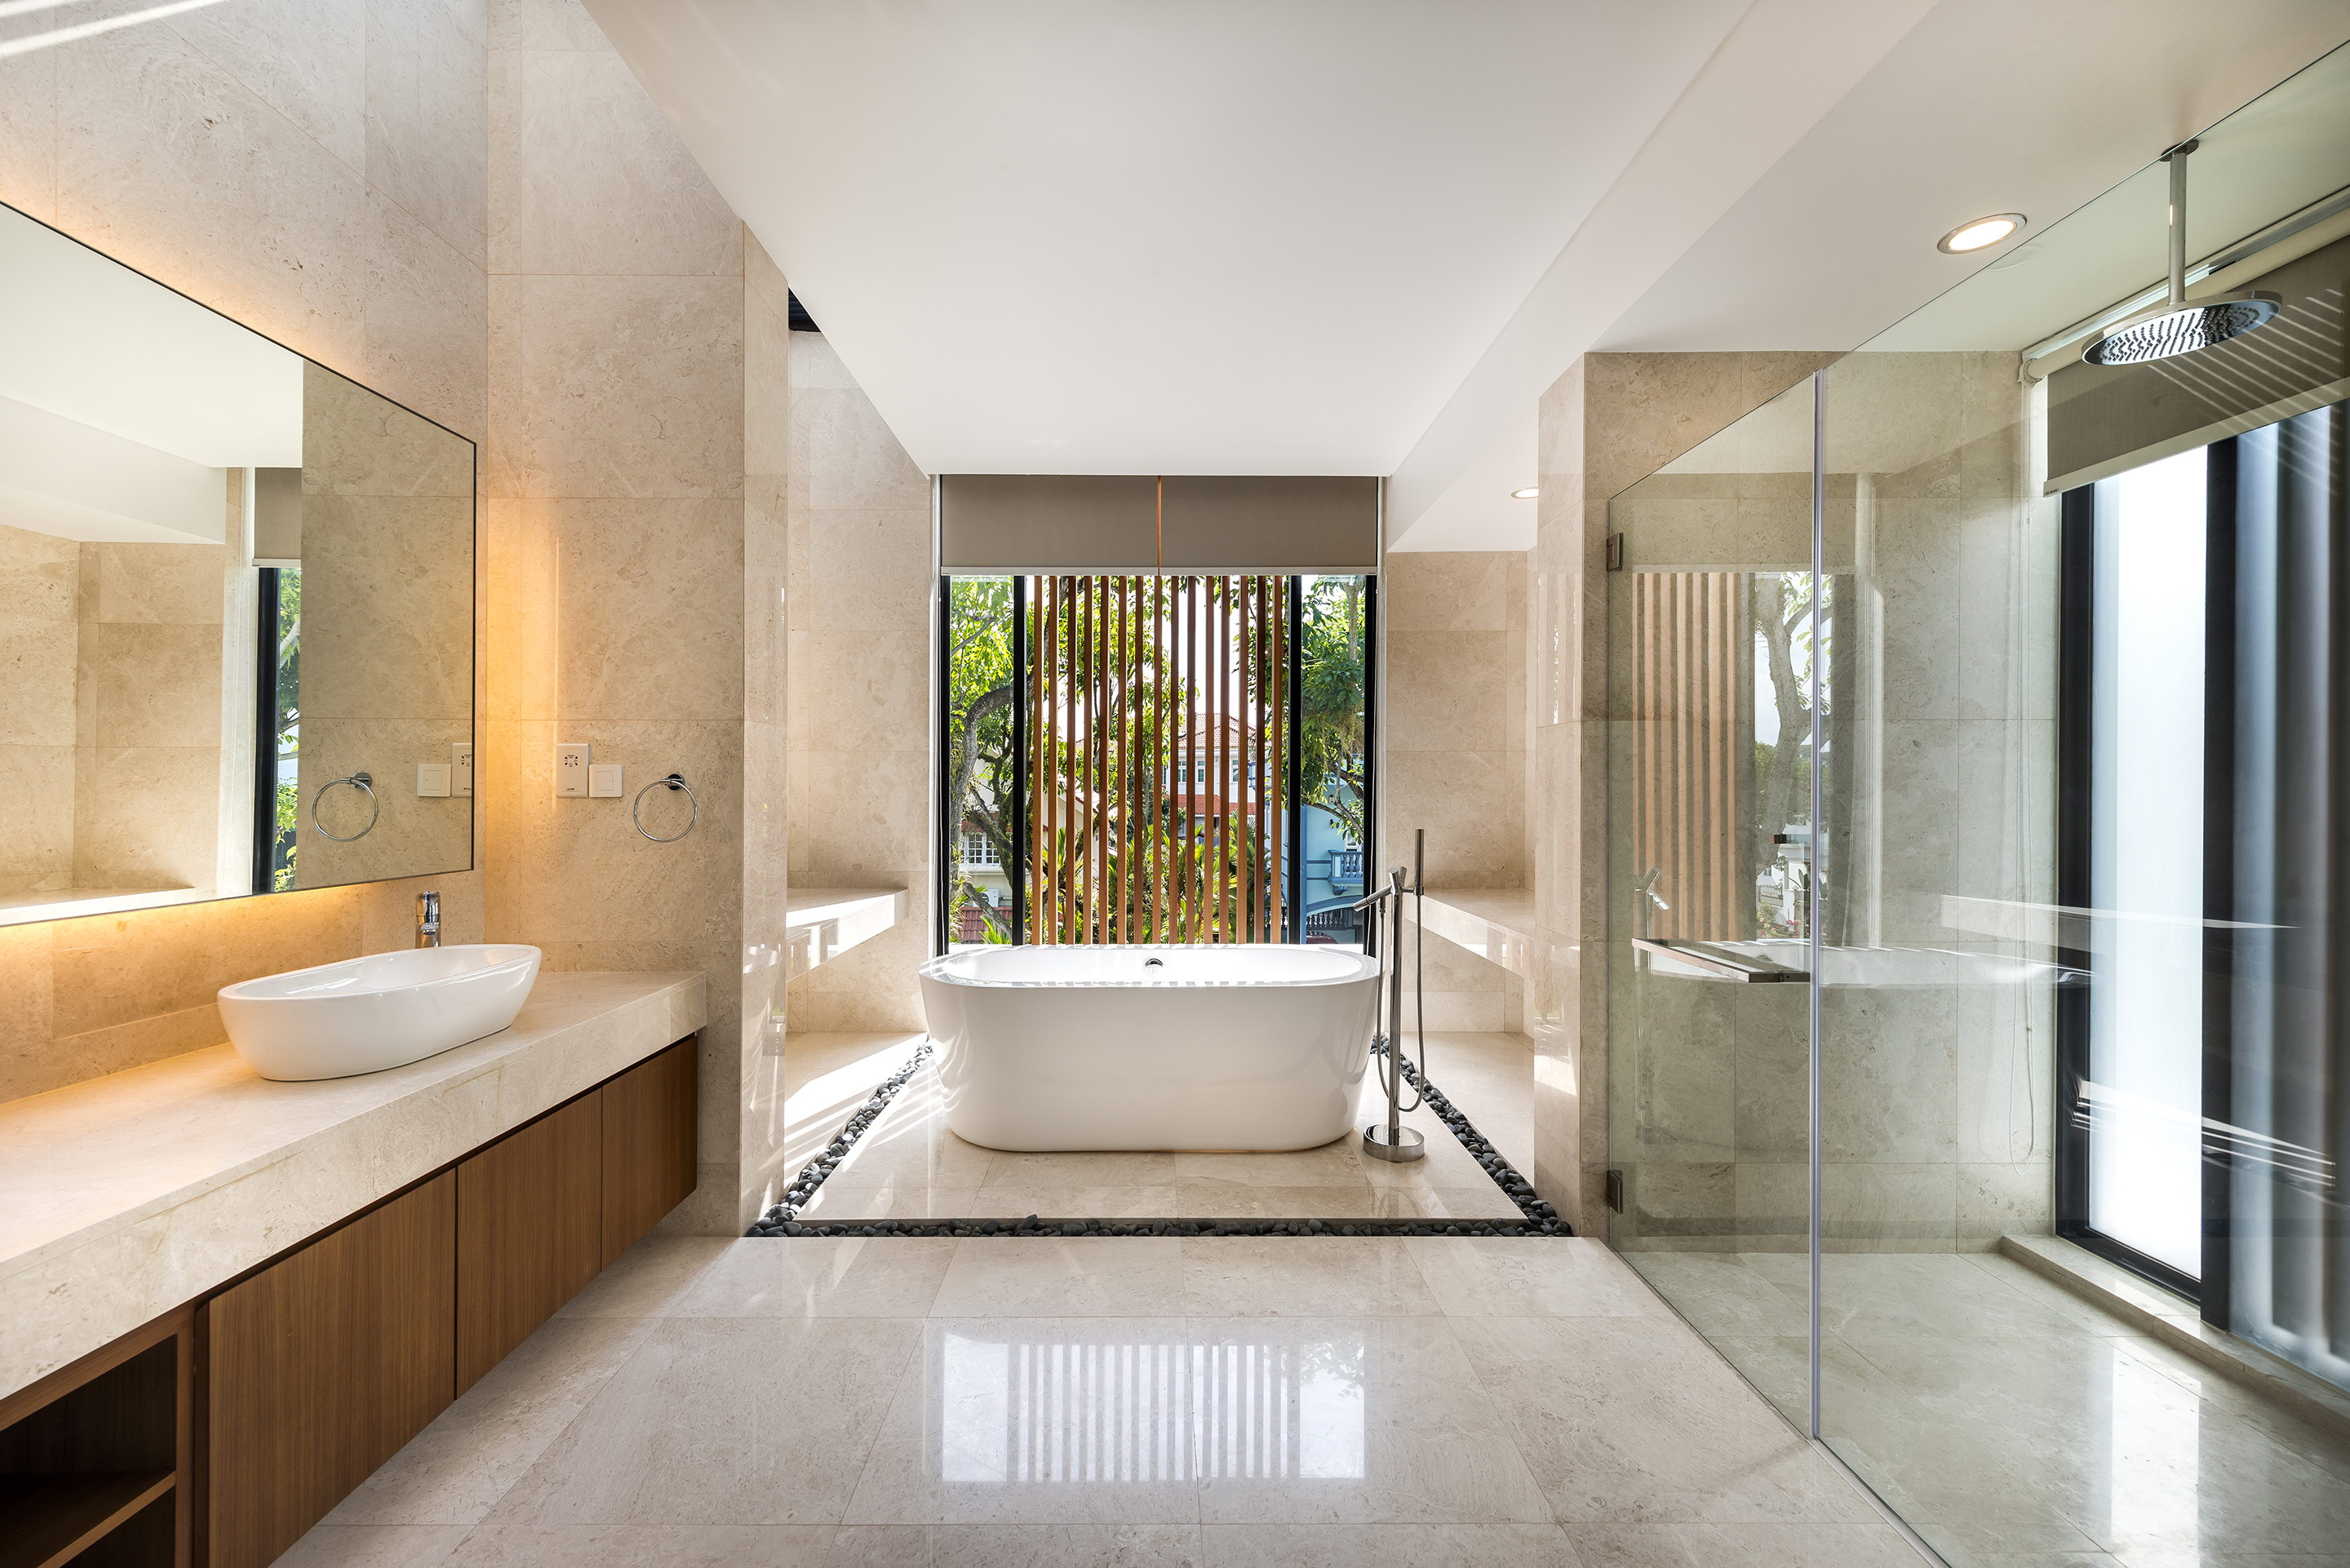 Mimosa Road   Mimosa House by Park + Associates